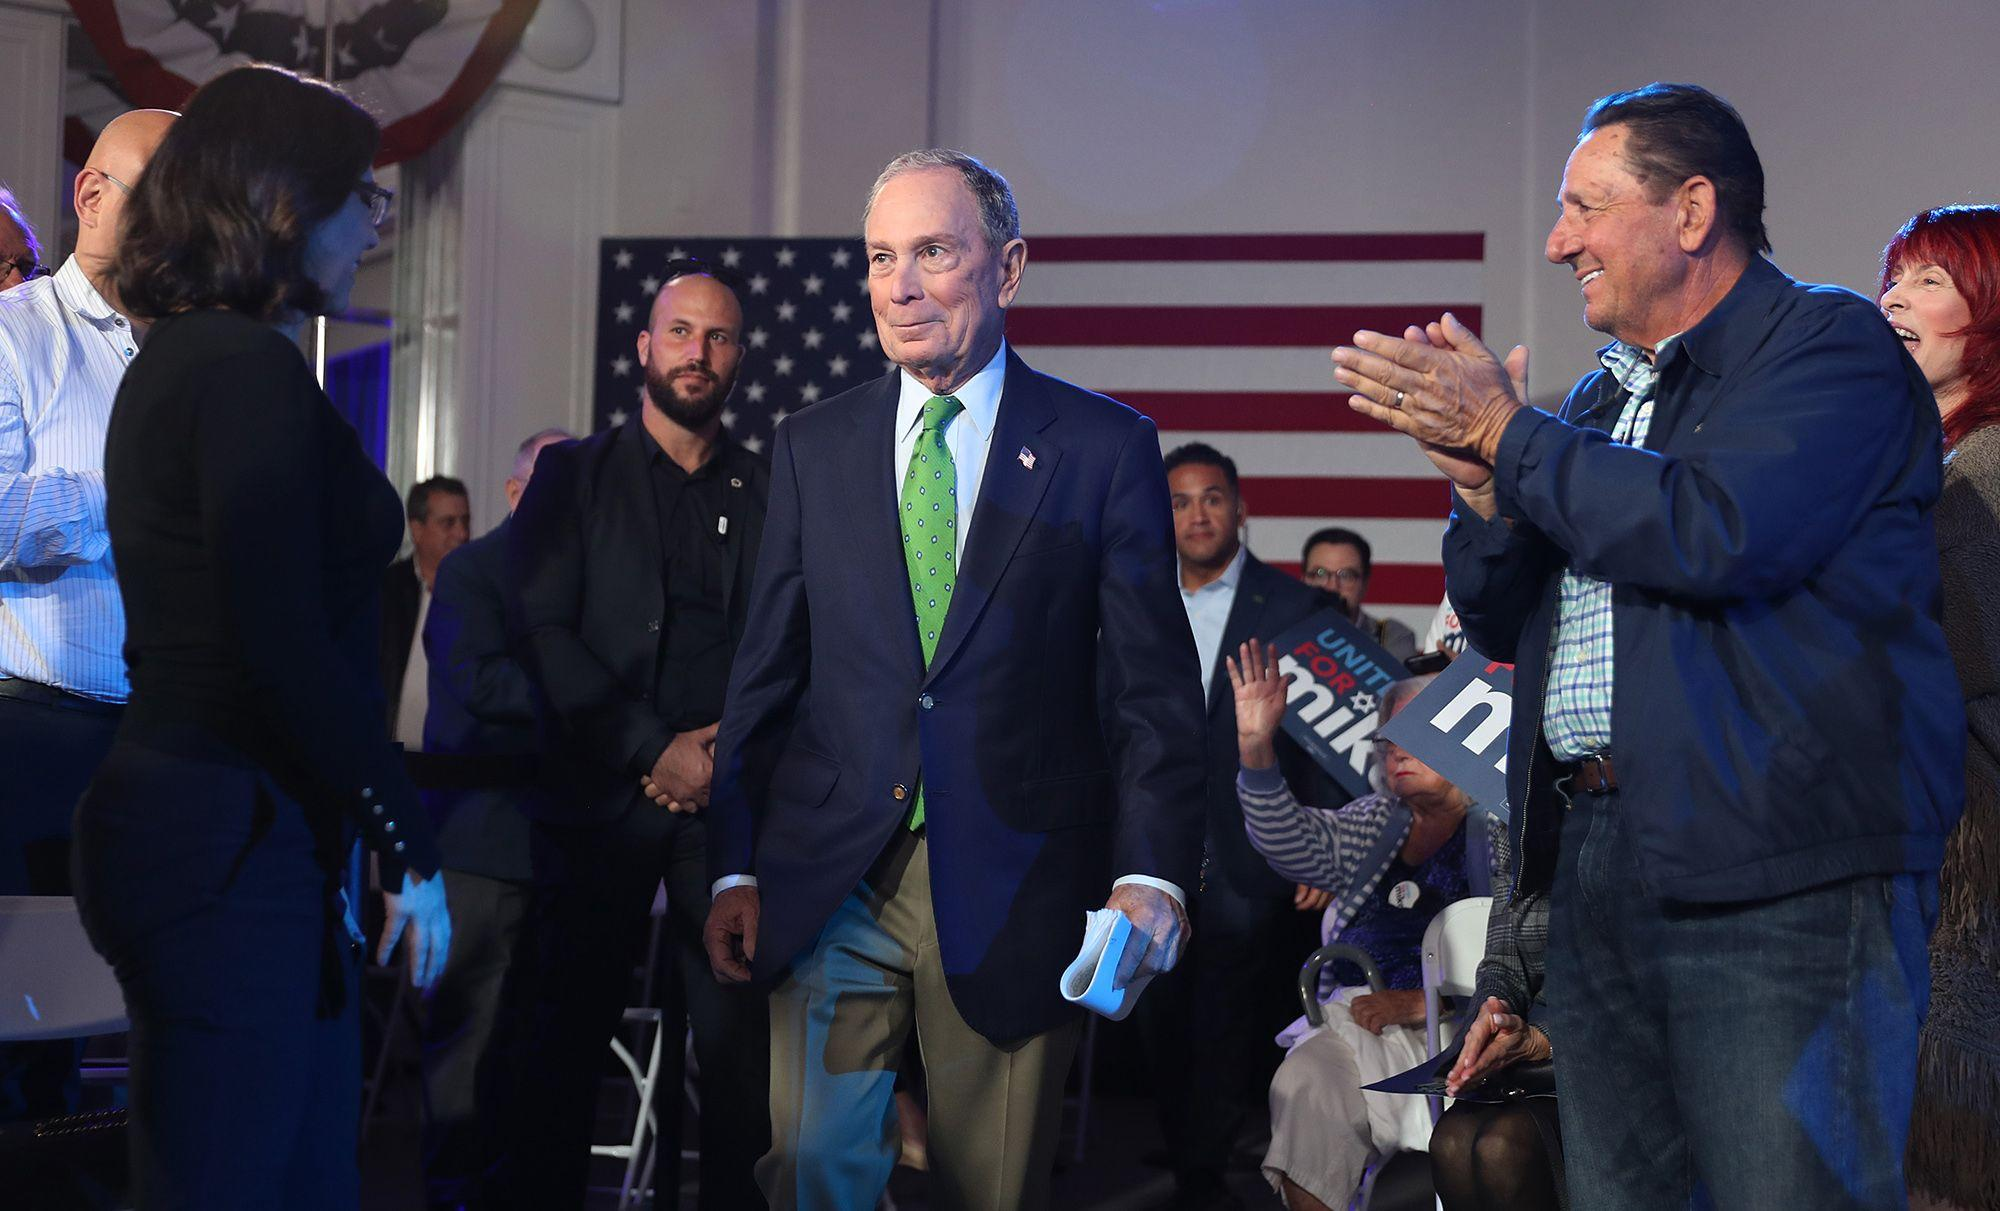 Bloomberg Drops Plans to Pay Workers, Launch Super PAC